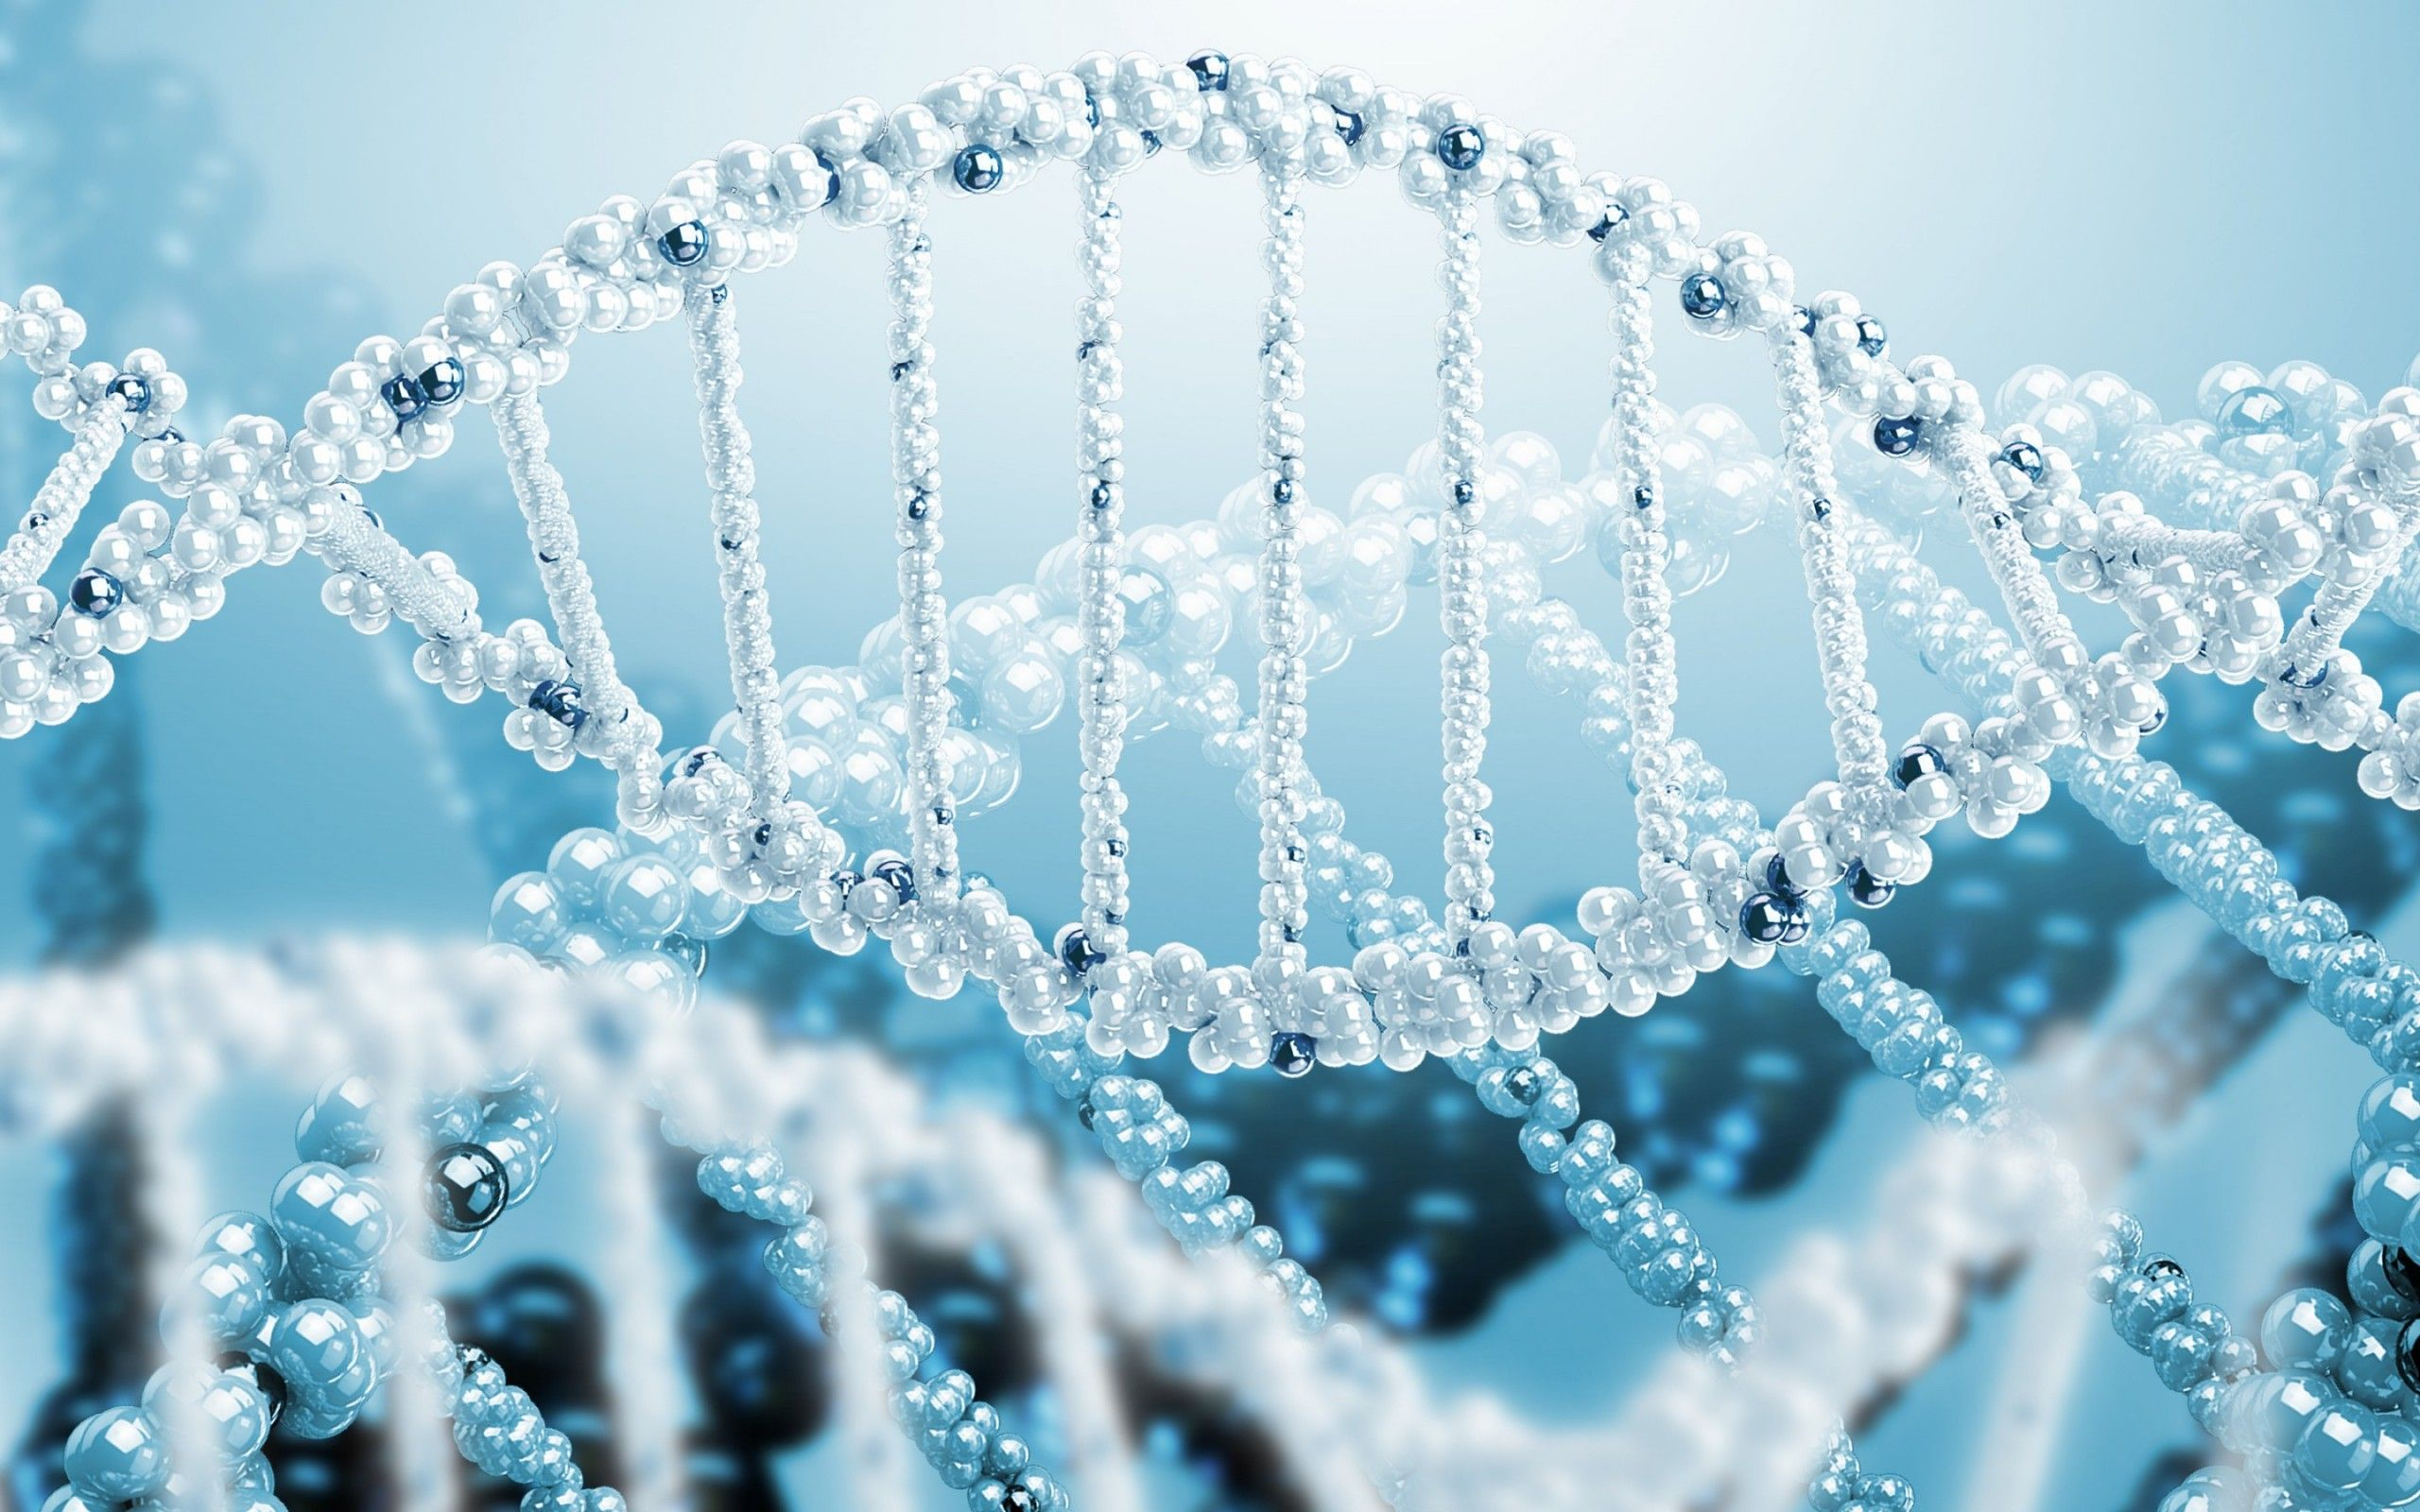 DNA wallpaper Find best latest DNA wallpaper in HD for your PC 2560x1600